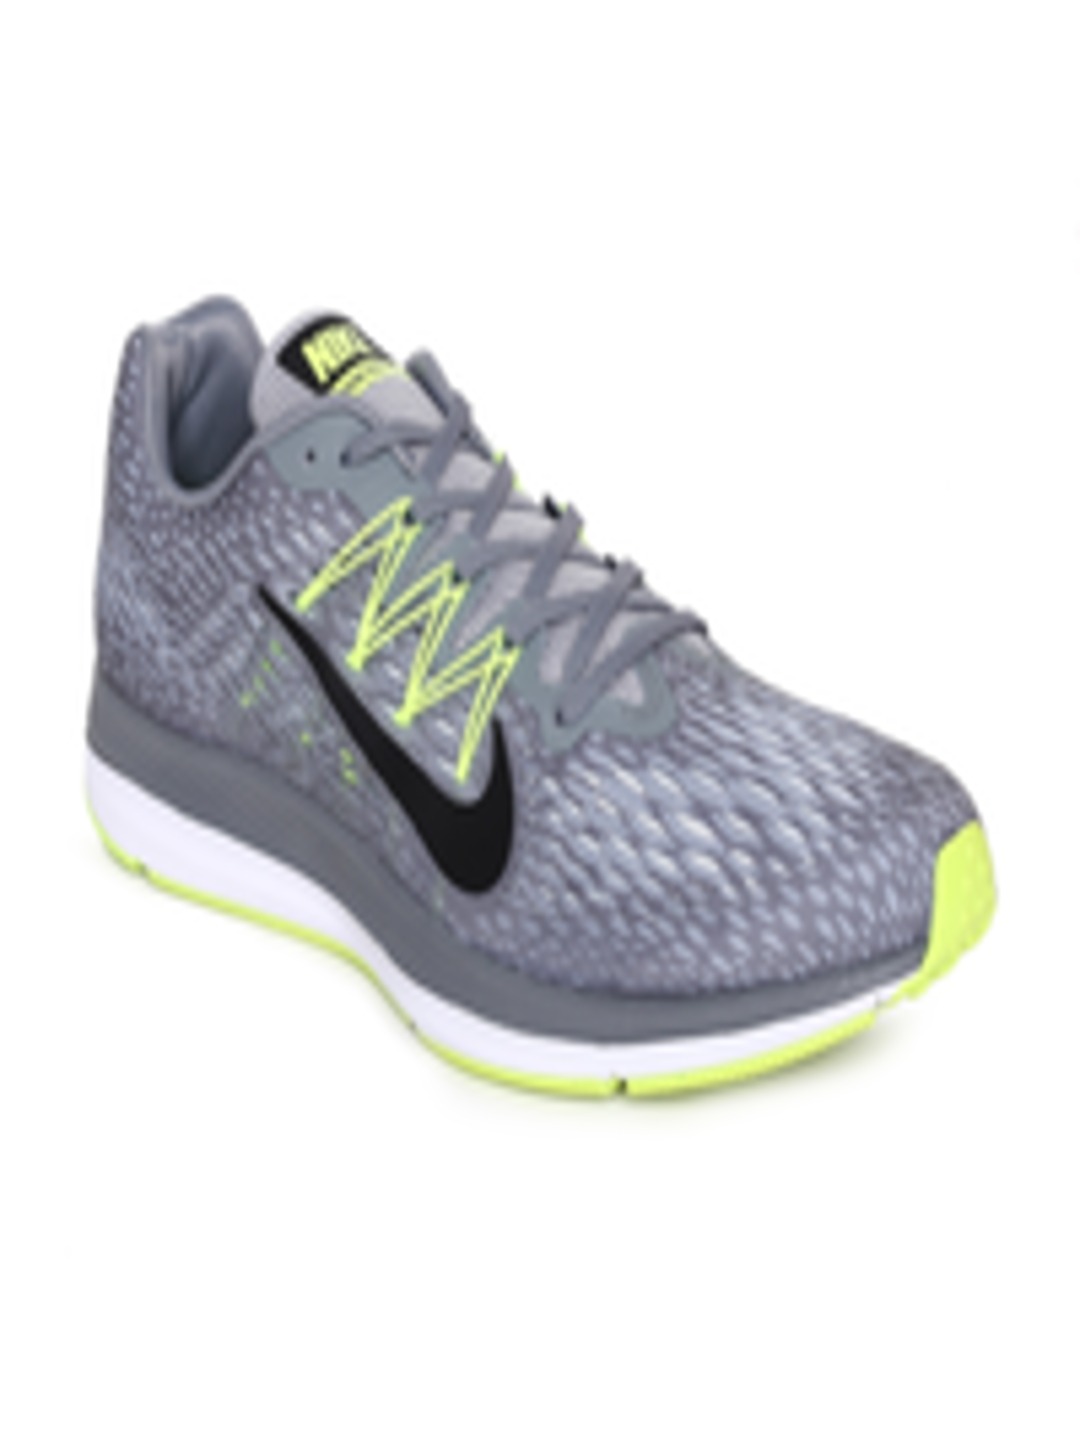 c61e8bc66b493 Buy Nike Men Grey Air Zoom Winflo 5 Running Shoes - Sports Shoes for Men  6676917